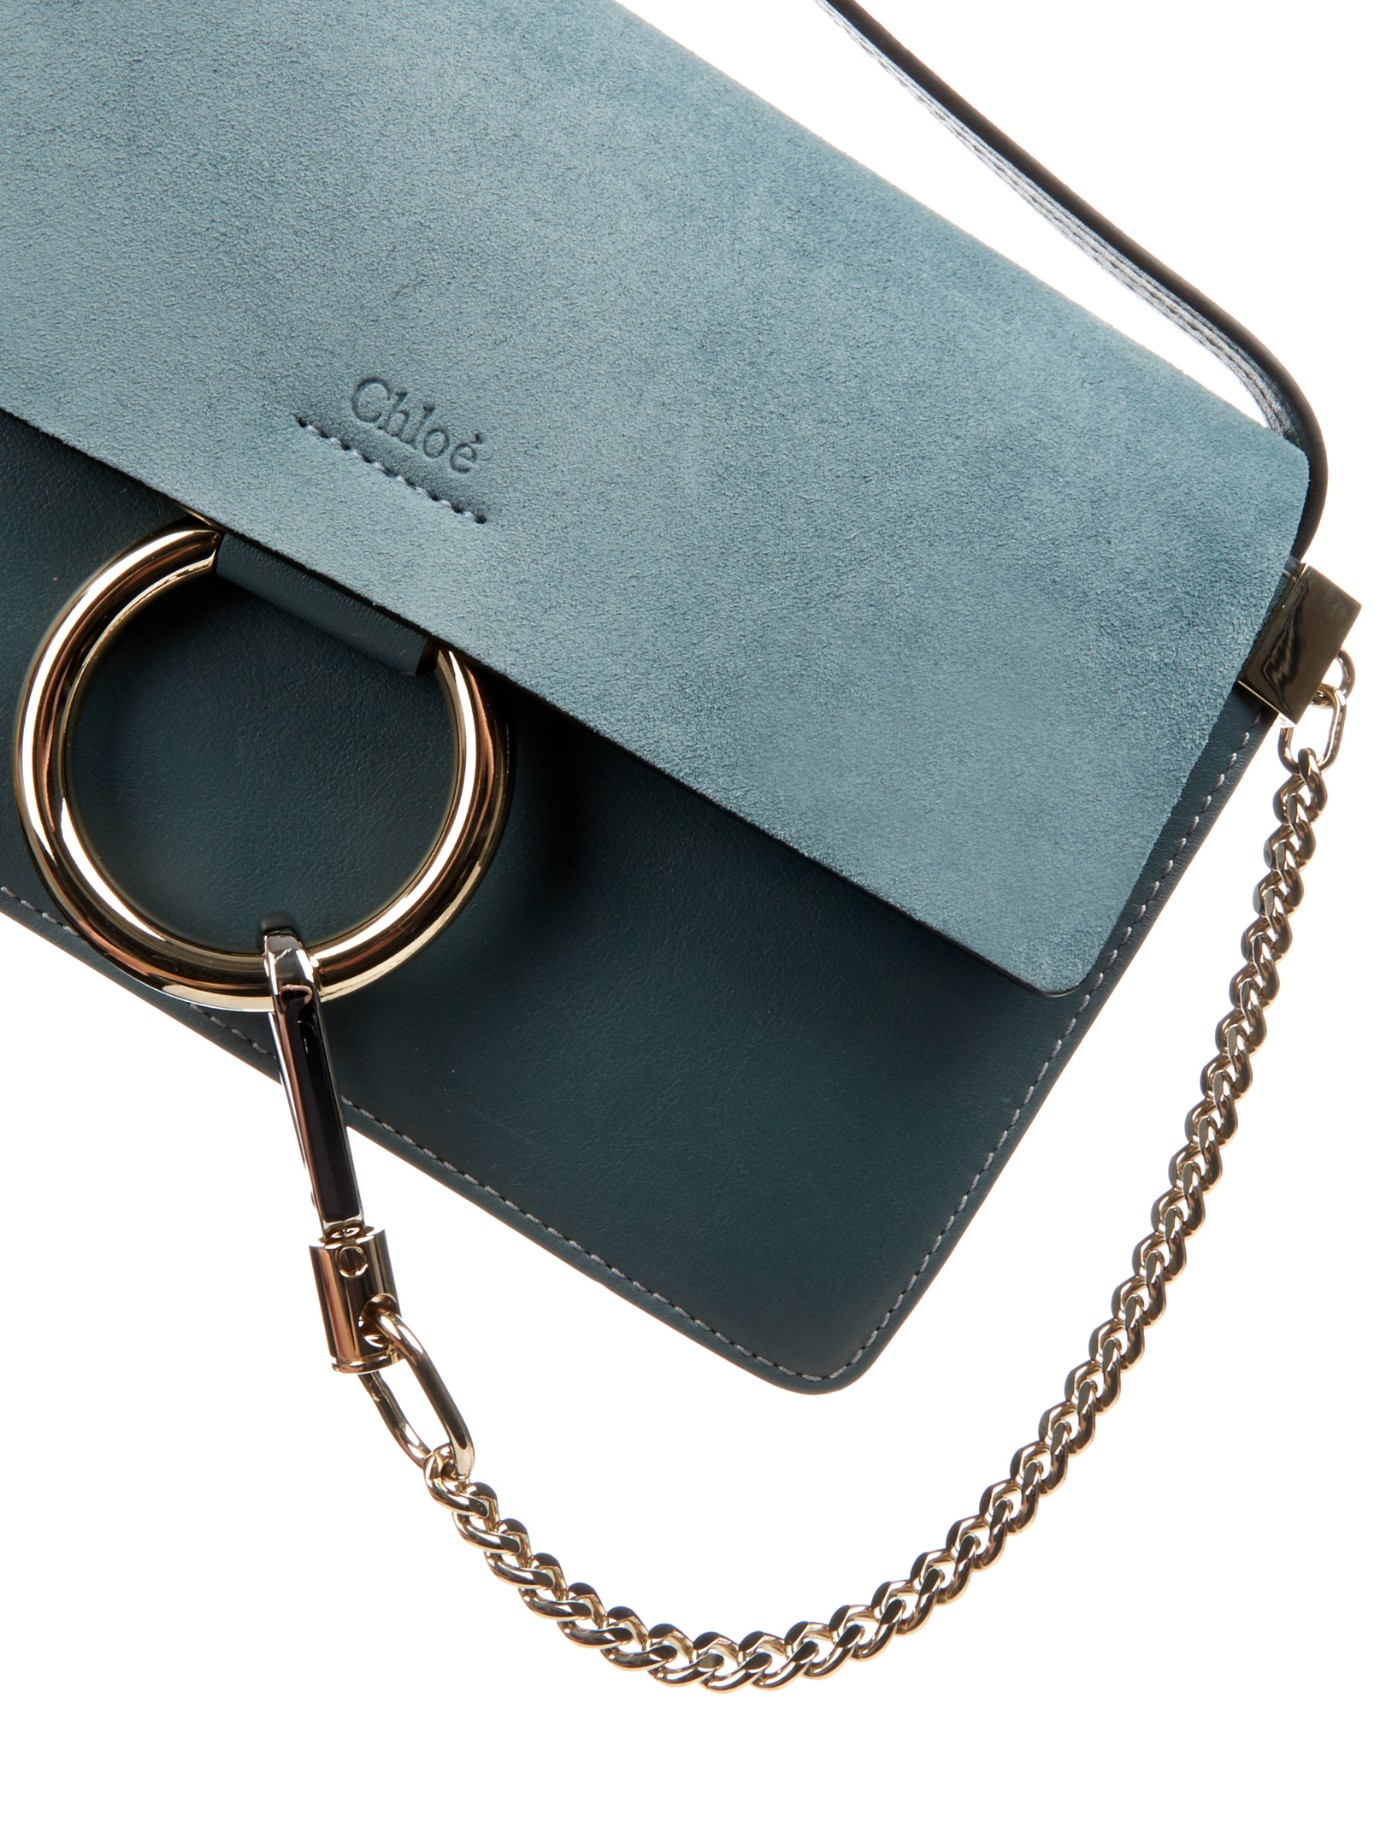 7cf4d757963a6 Chloé Faye Leather and Suede Cross-Body Bag in Blue - Lyst